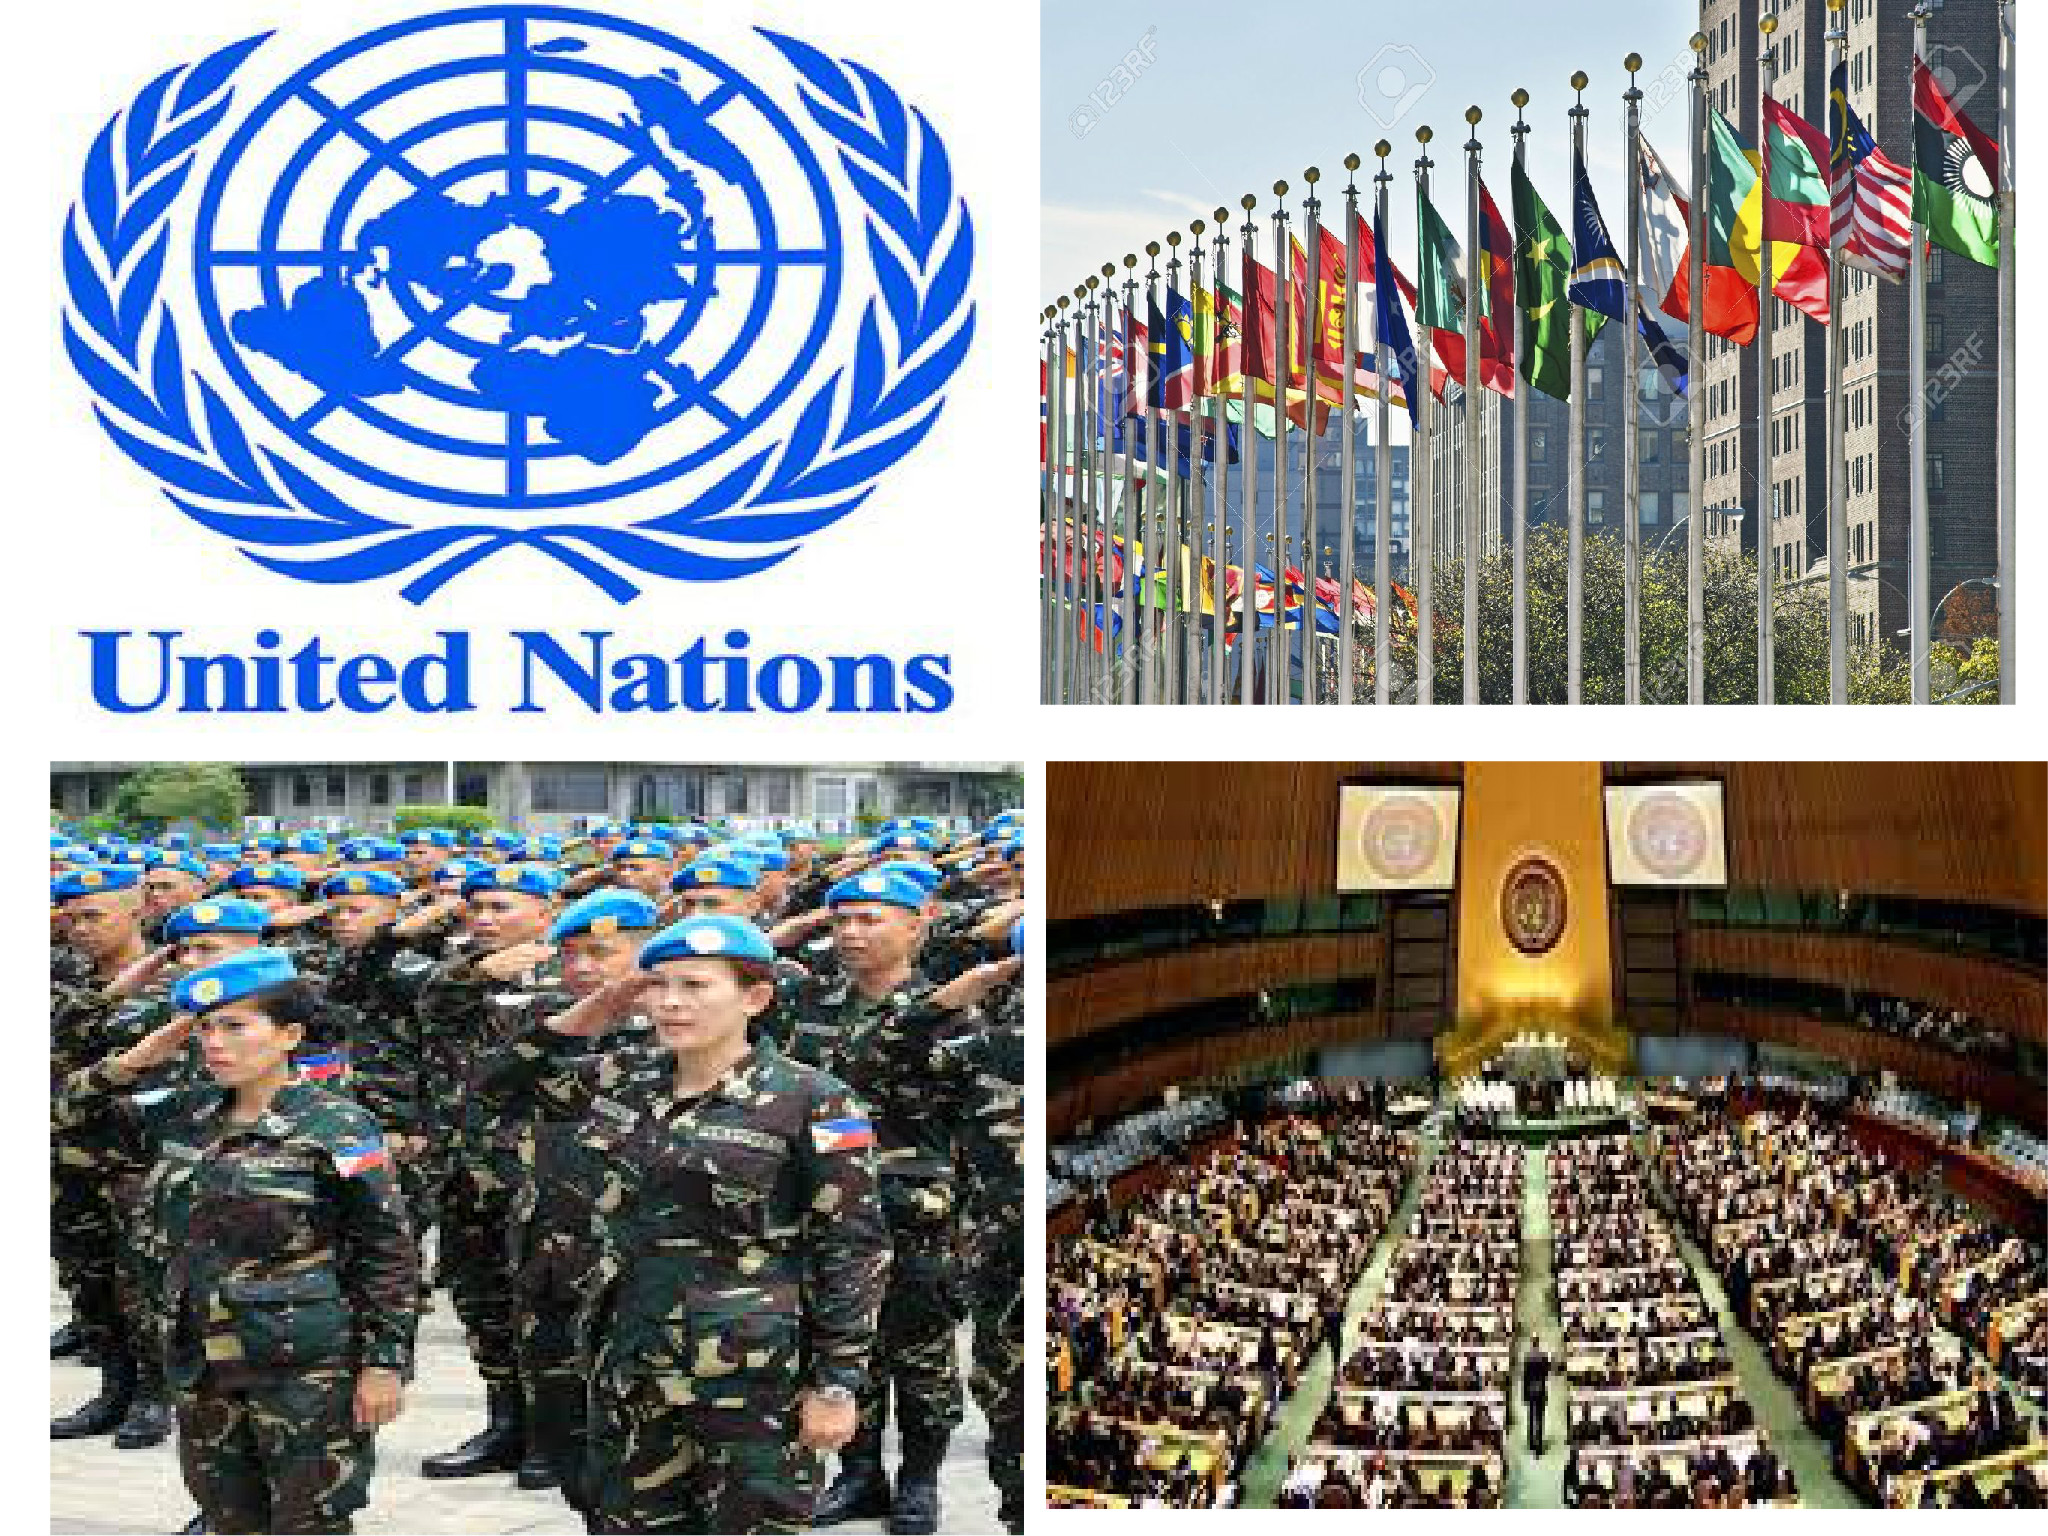 essay on the failure of the united nations Read this social issues essay and over 88,000 other research documents united nations as a failure united nations 1 birth: the seed of the idea for a new postwar.